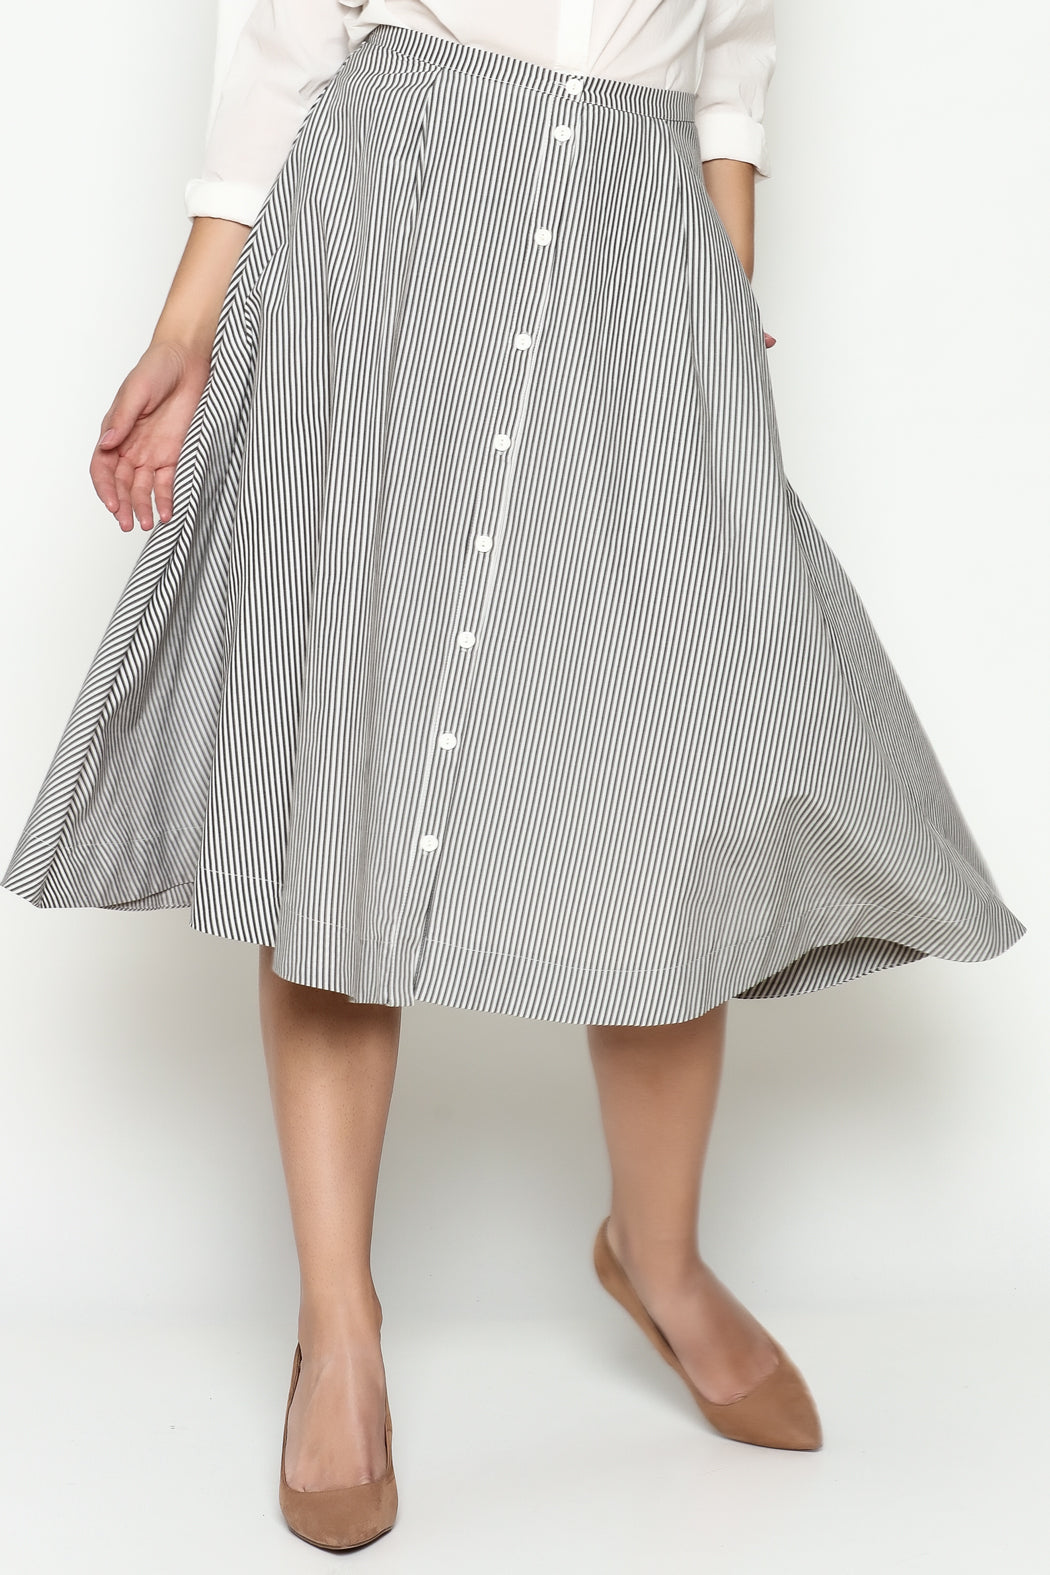 A-line skirt. striped skirt